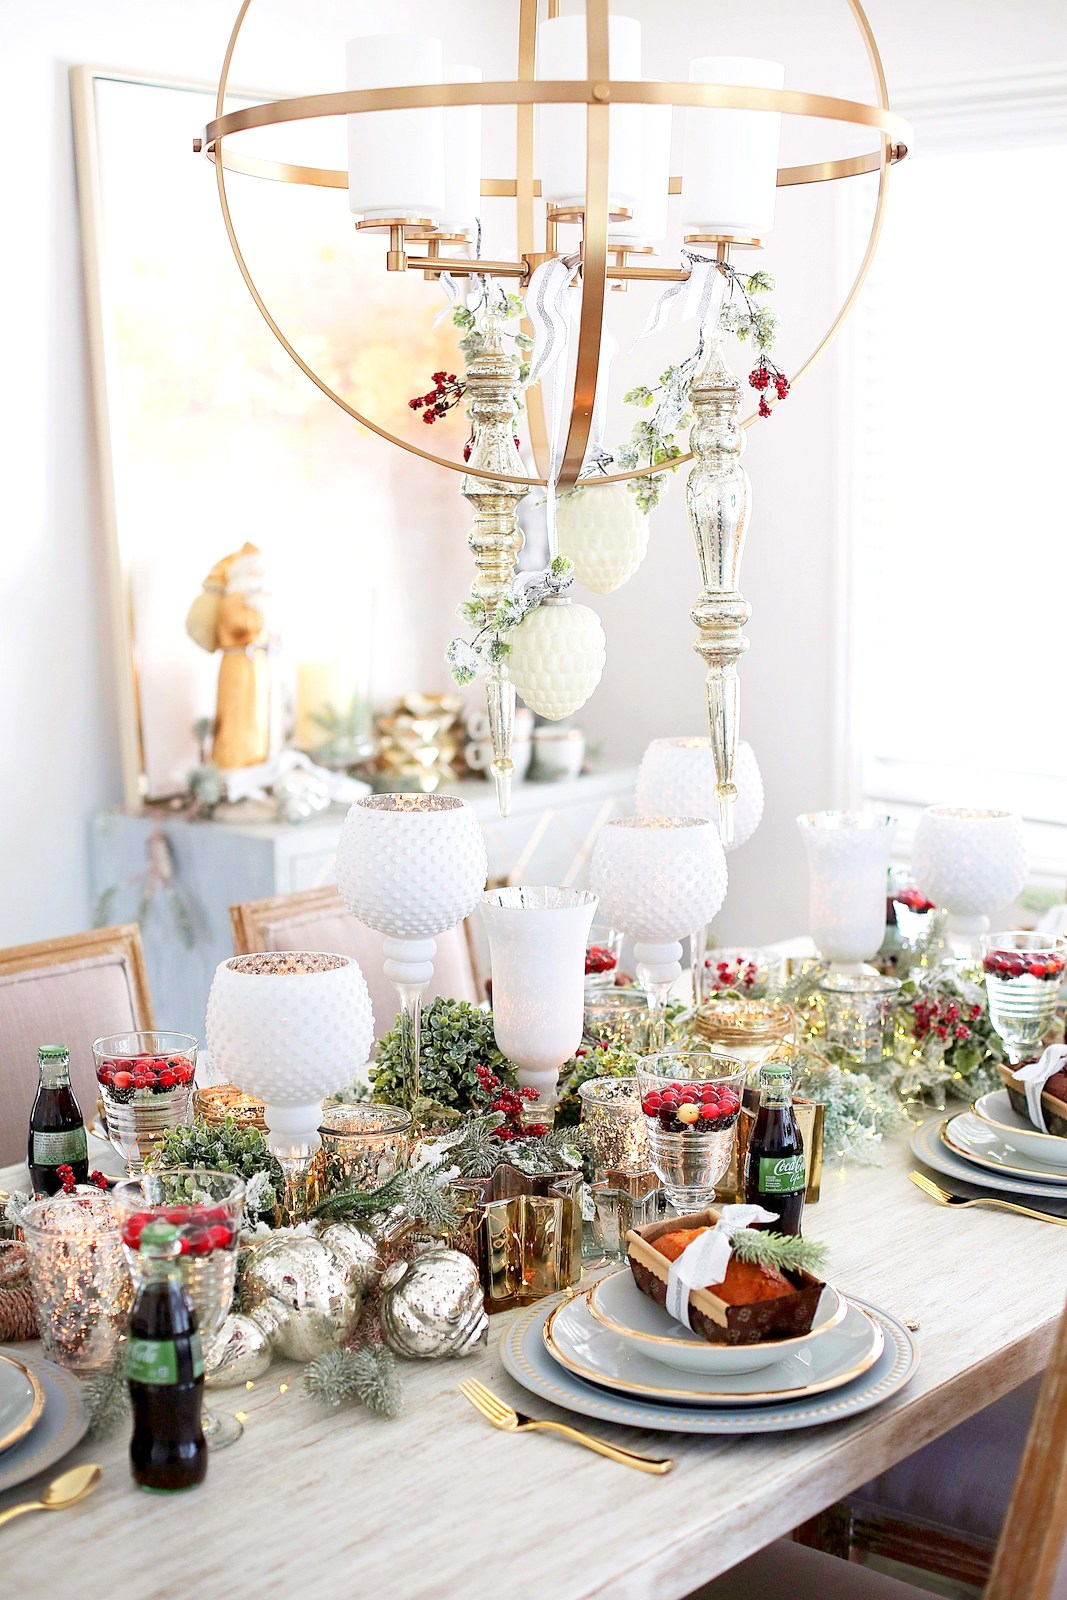 Dining Room Holiday Decor Ideas Home Decor Sandy A La Mode